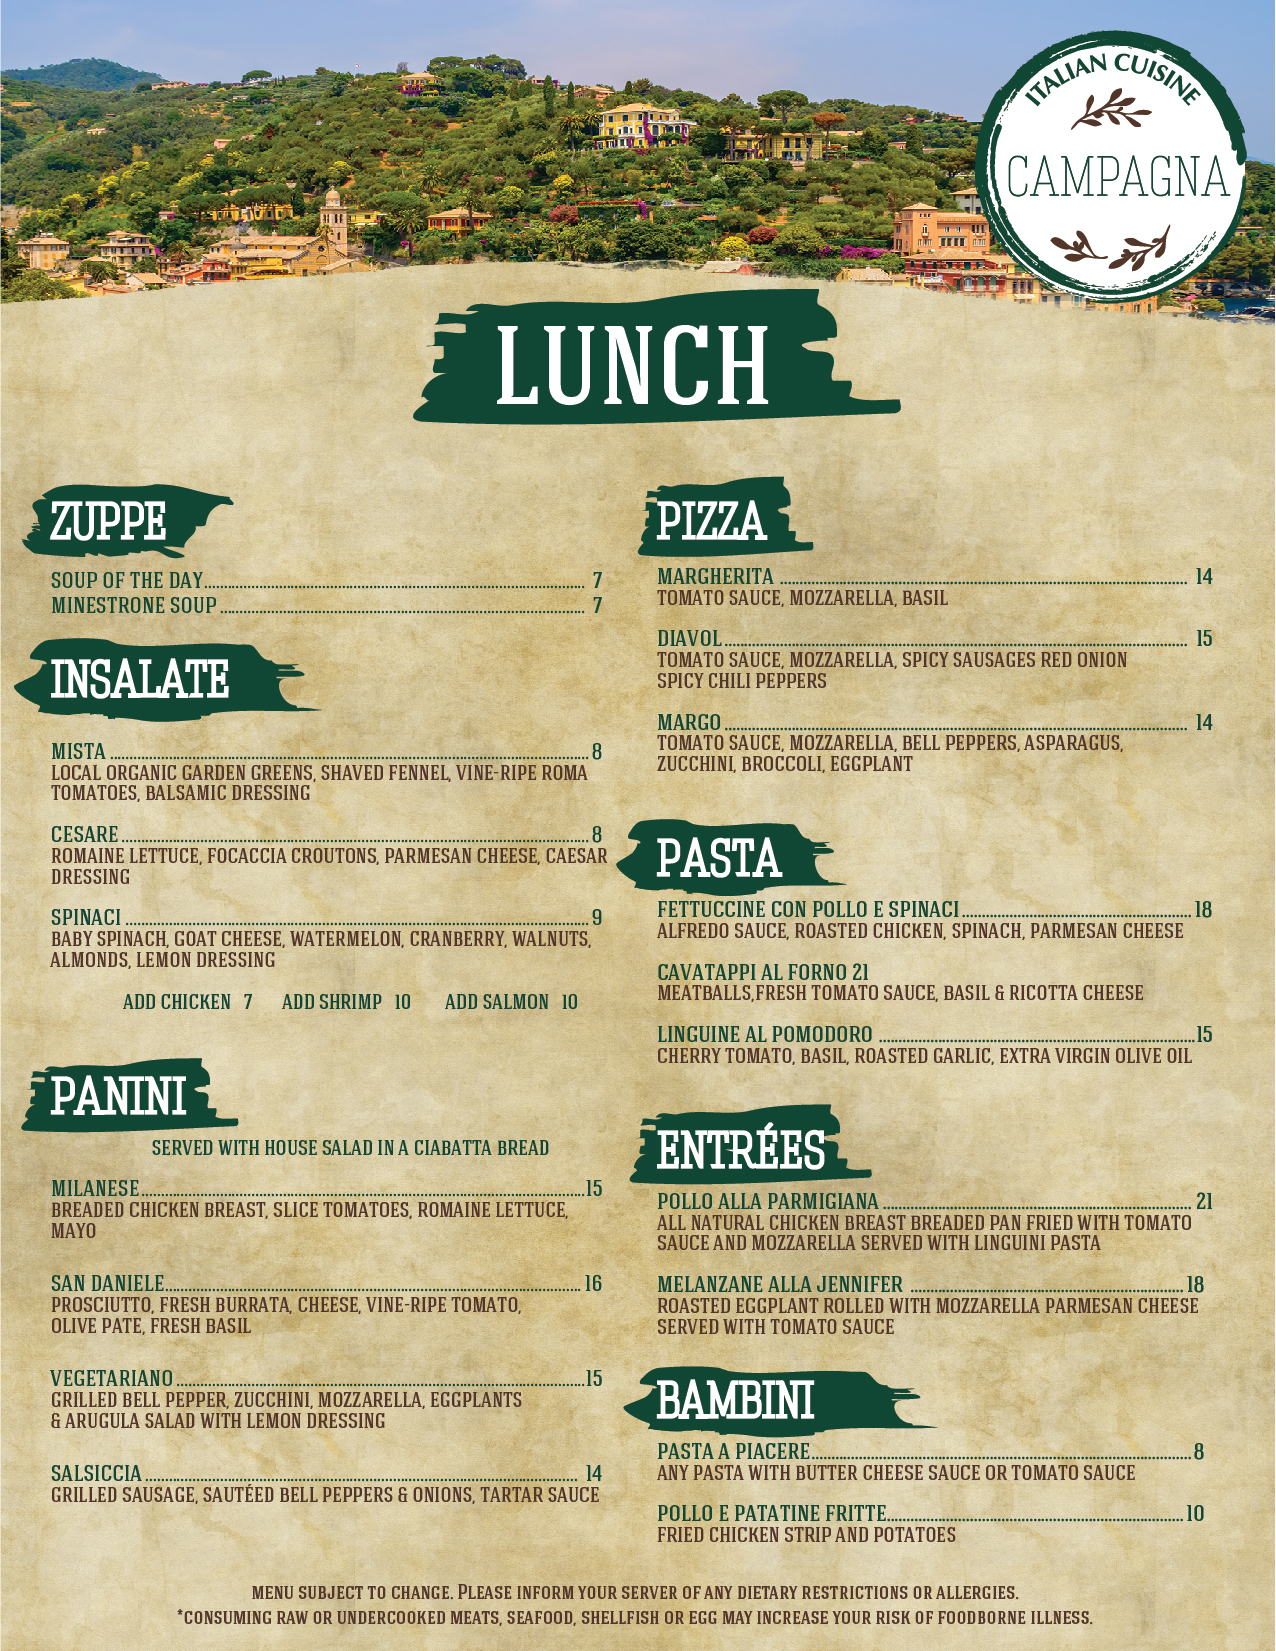 Campagna LUNCH Menu_[Lunch] [Front]